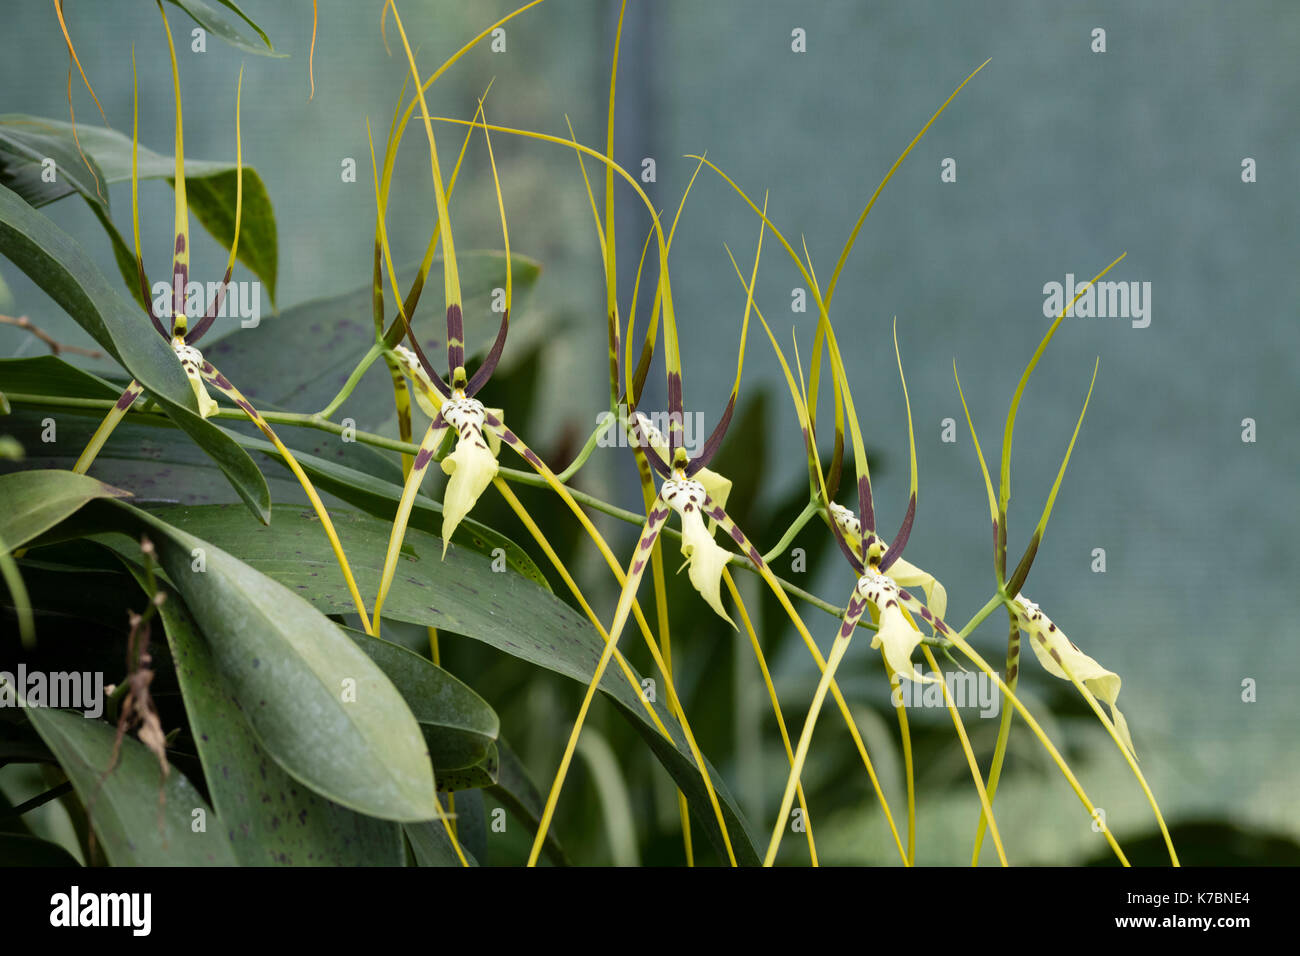 Spidery flowers in the spike of the hybrid orchid, Brassia Edvah Loo gx 'Vera Cruz' - Stock Image